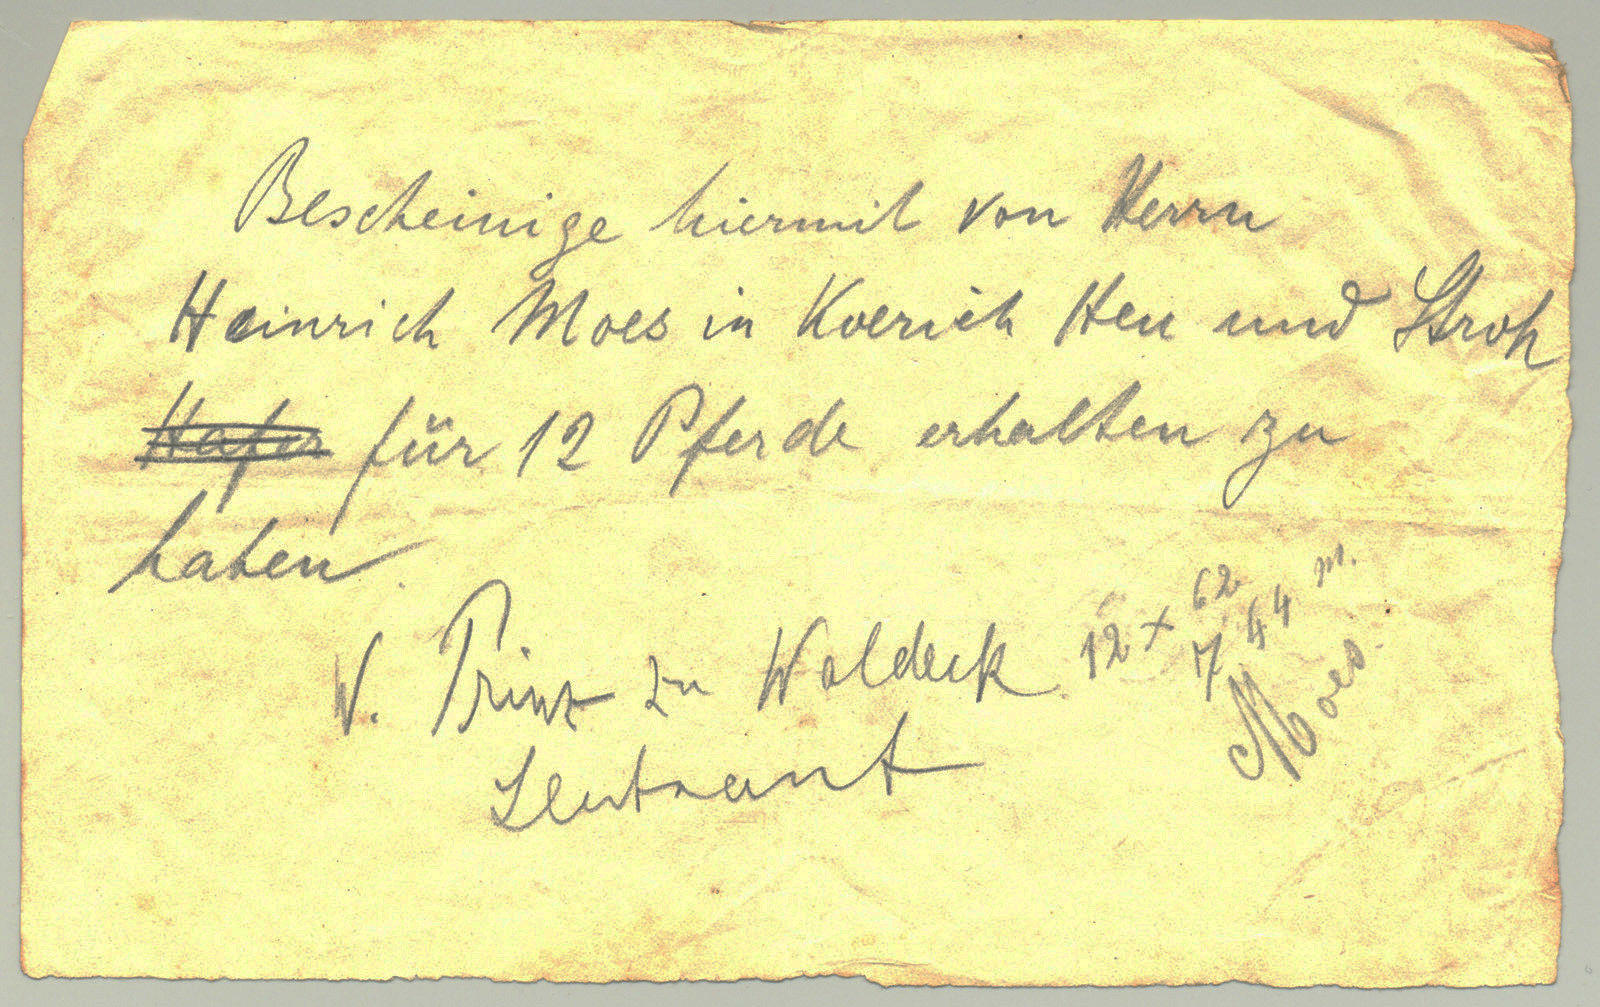 Receipt for feeding horses J. Prinz zu Waldeck, August 24th, 1914, Europeana 1914- 1918 / Collection Thillenvogtei, CC BY-SA